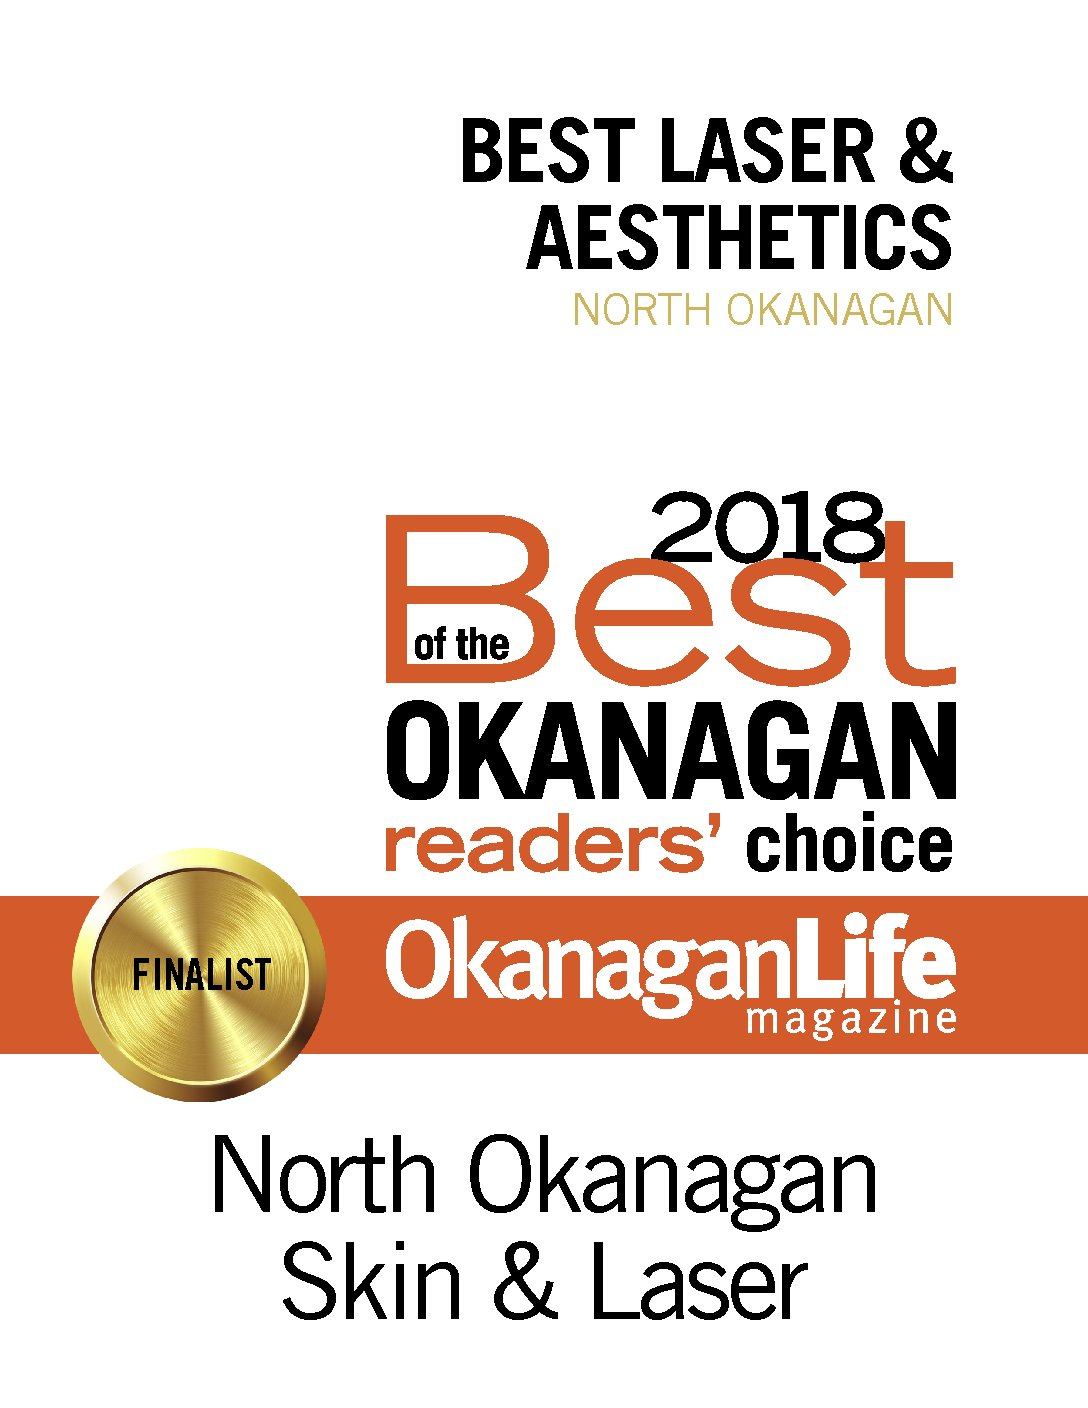 North Okanagan Skin & Laser